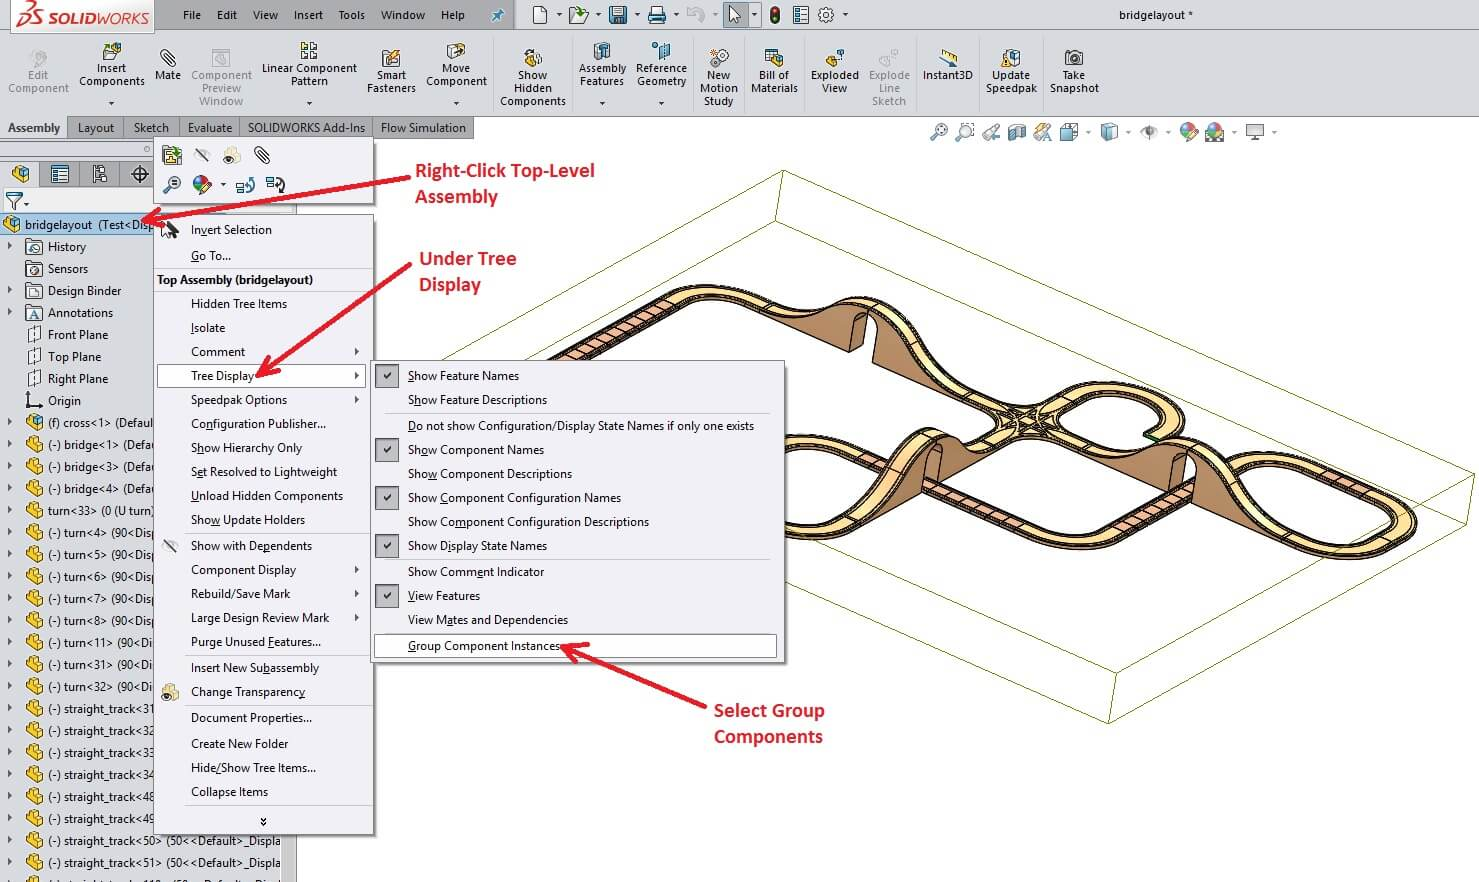 SOLIDWORKS 2017 Large Assembly Features and Demonstration